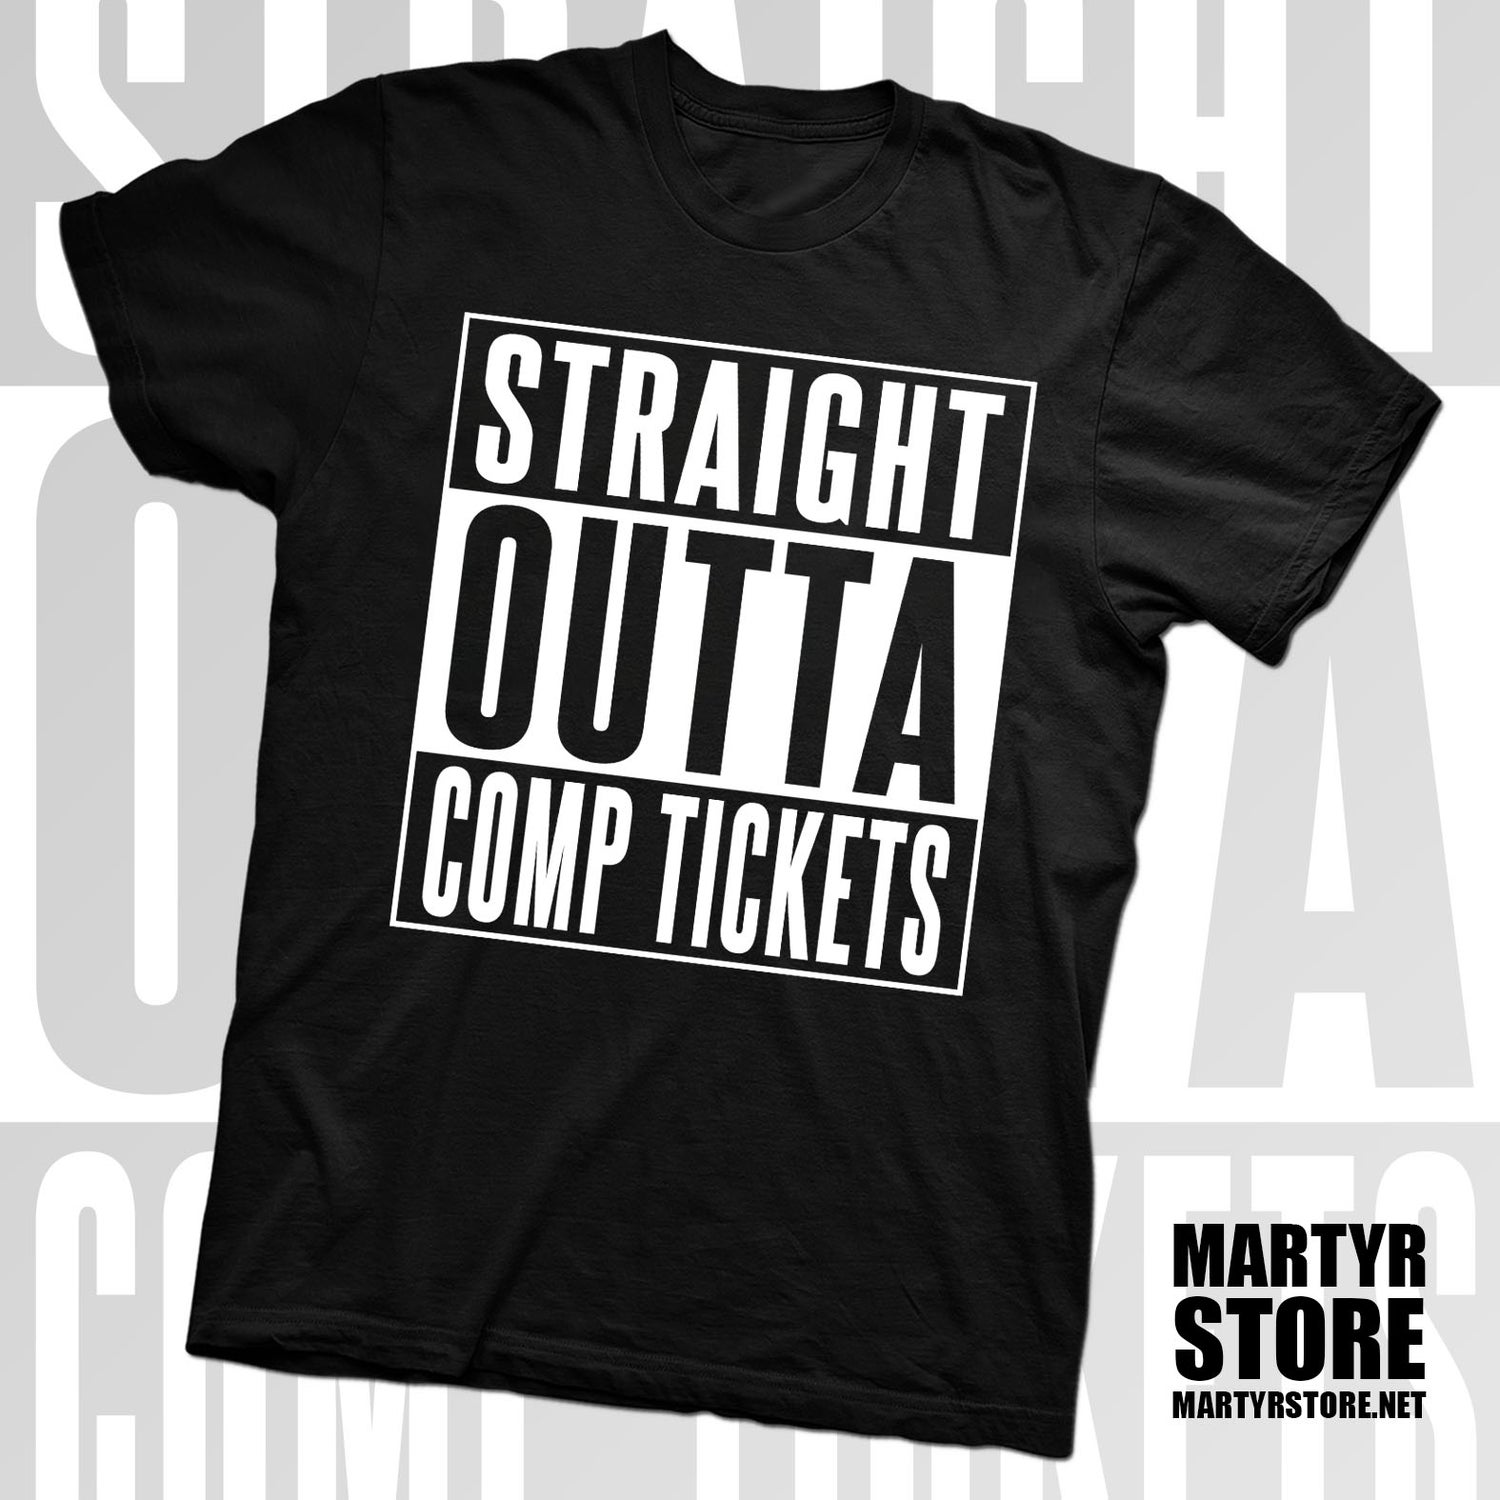 Image of STRAIGHT OUTTA COMP TICKETS T-SHIRT